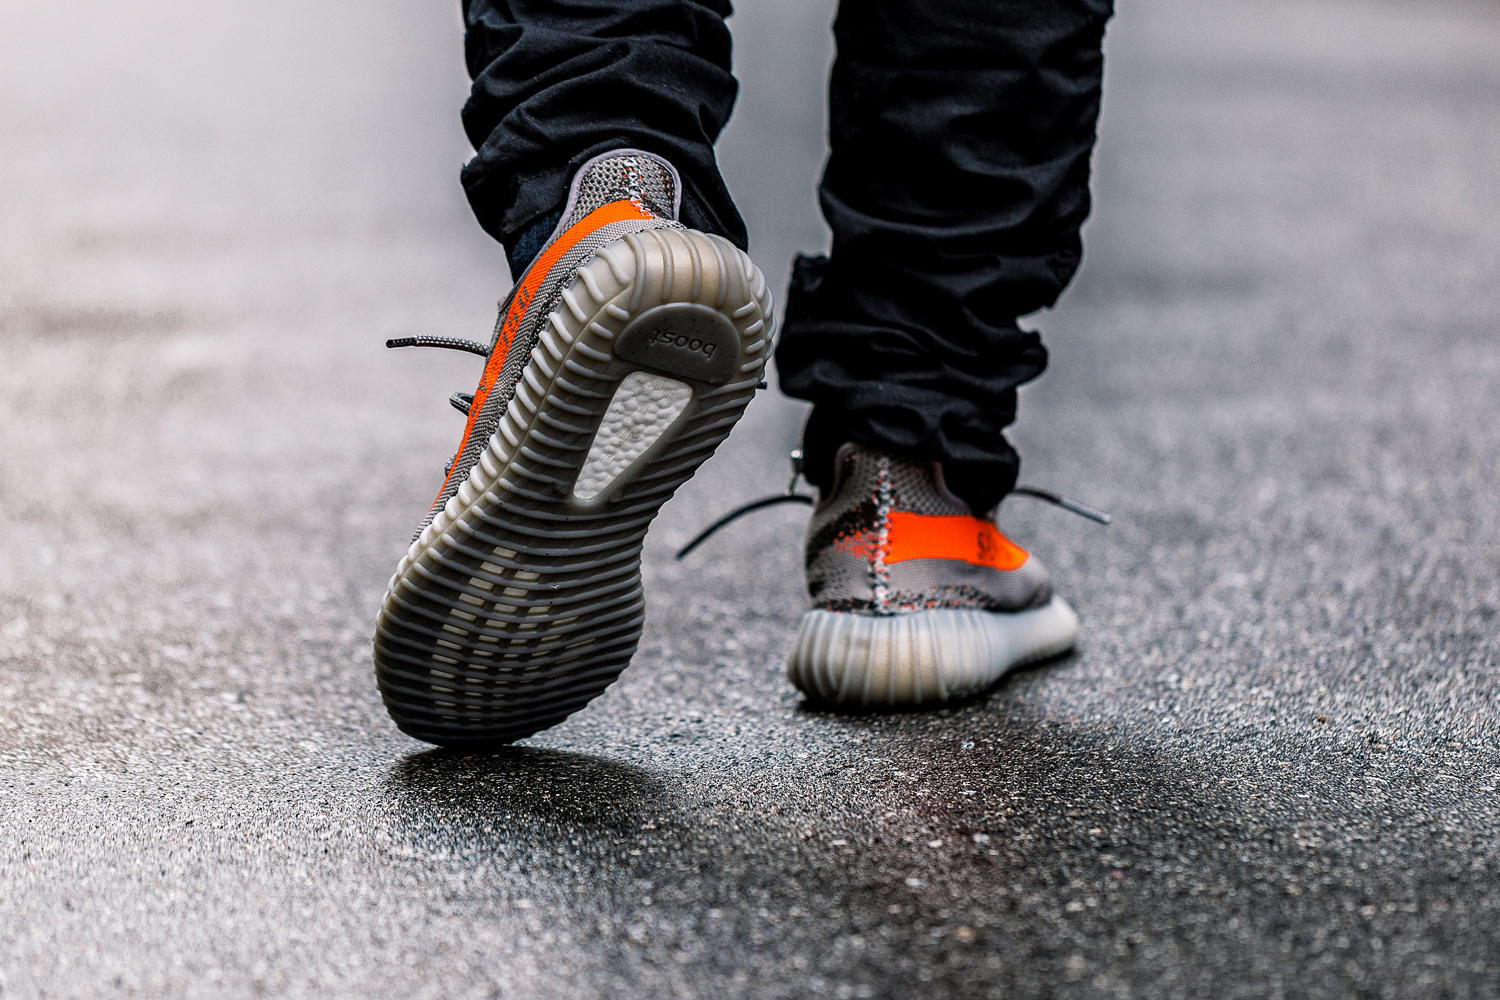 A Closer Look at the adidas Yeezy Boost 350 V2 Kanye west SOLAR RED/STEEPLE GRAY/BELUGA primeknit - 1316981